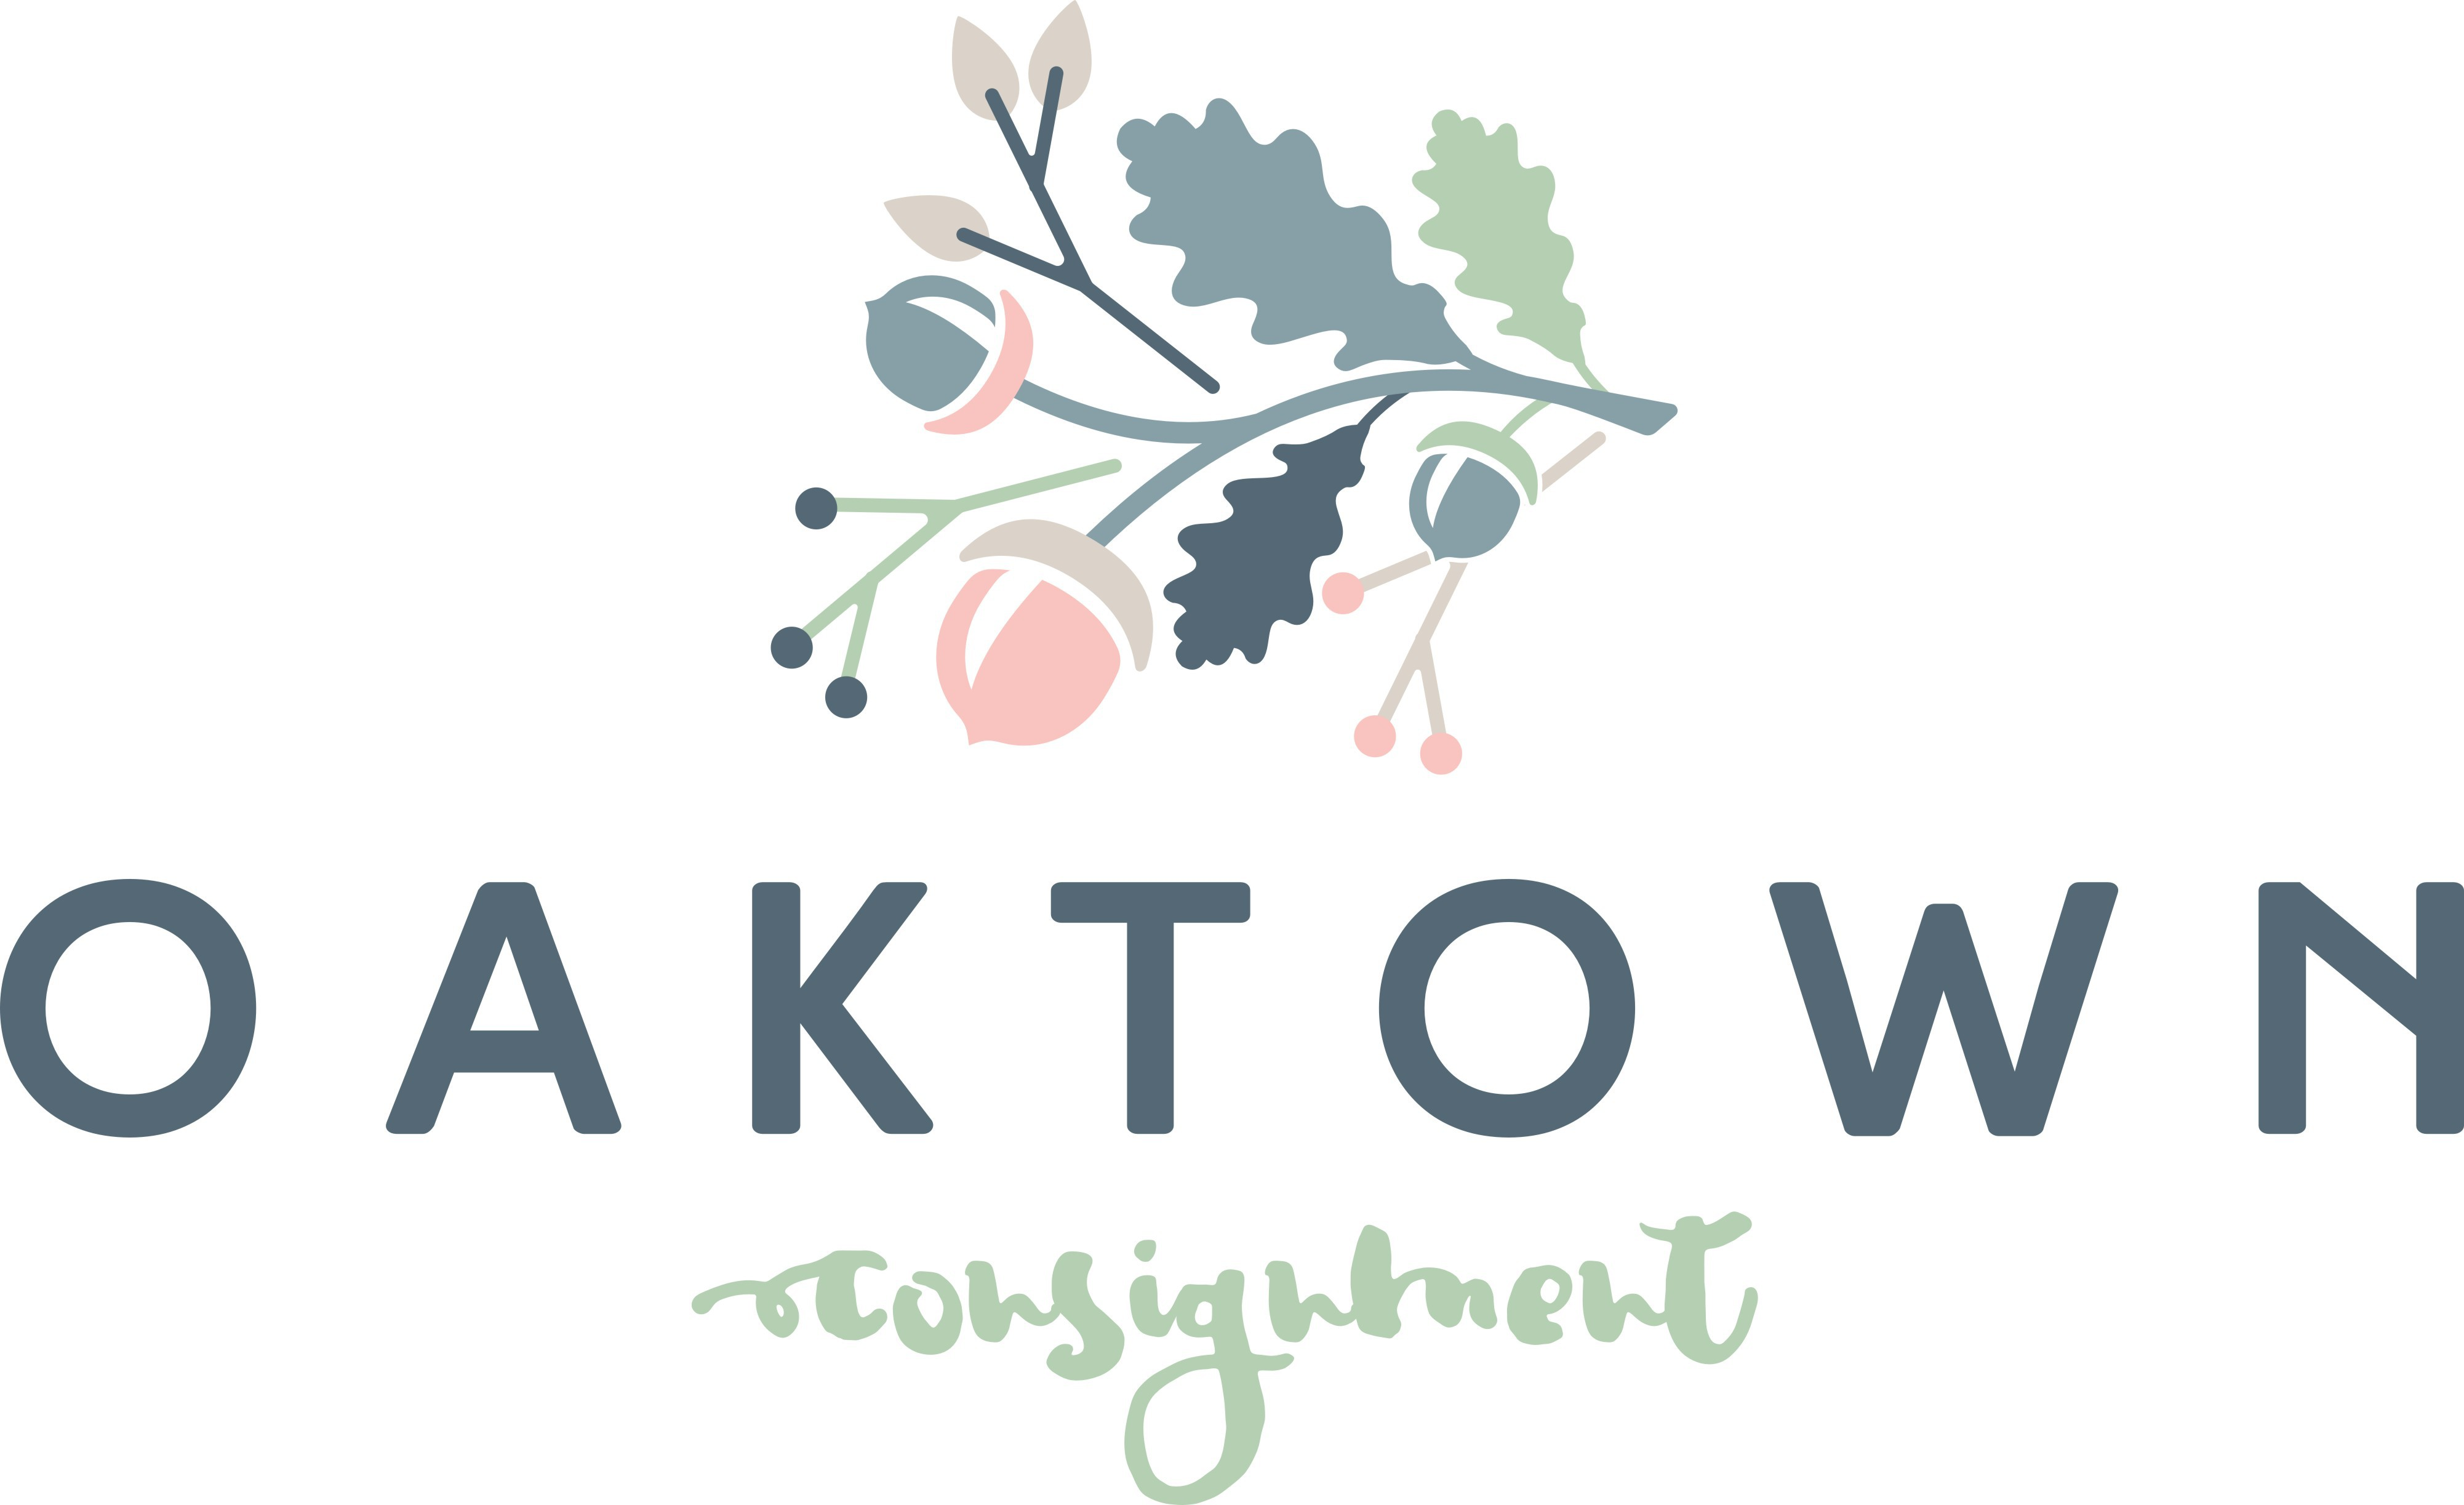 Create a feminine, rustic, hipster but modern logo for Oaktown Consignment, an online consignment boutique!